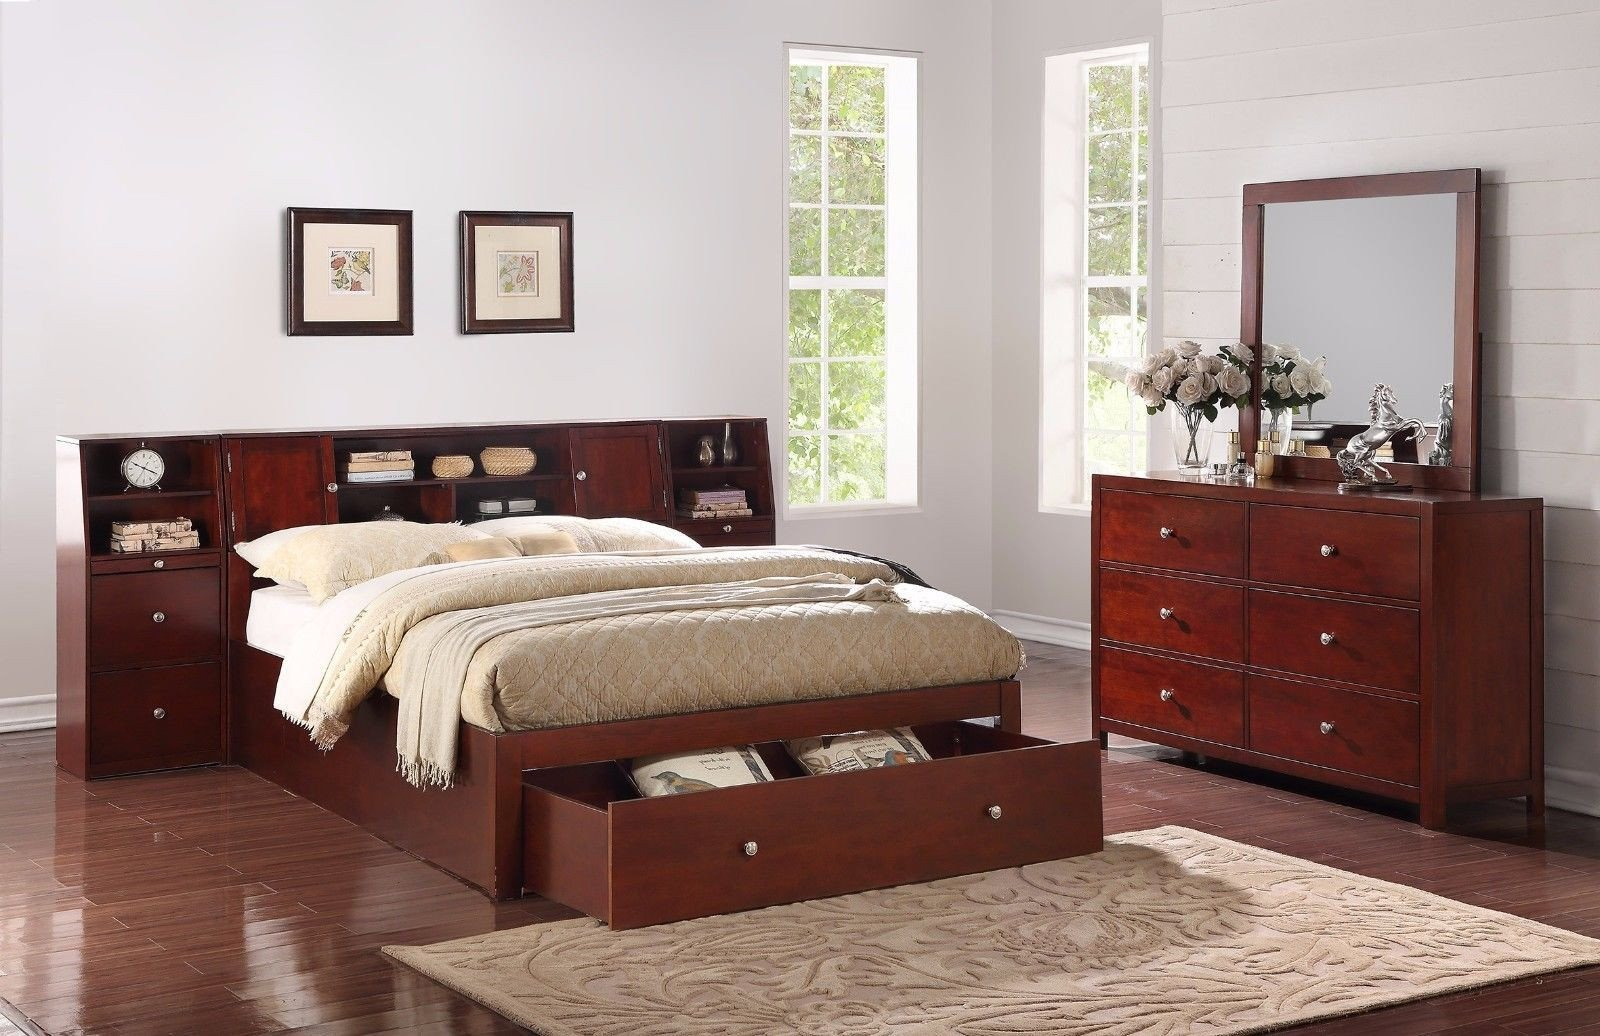 Queen Bedroom Set Cheap New Bedroom 4pc Set Queen Bed W Storage Drawer Shelf Nightstand